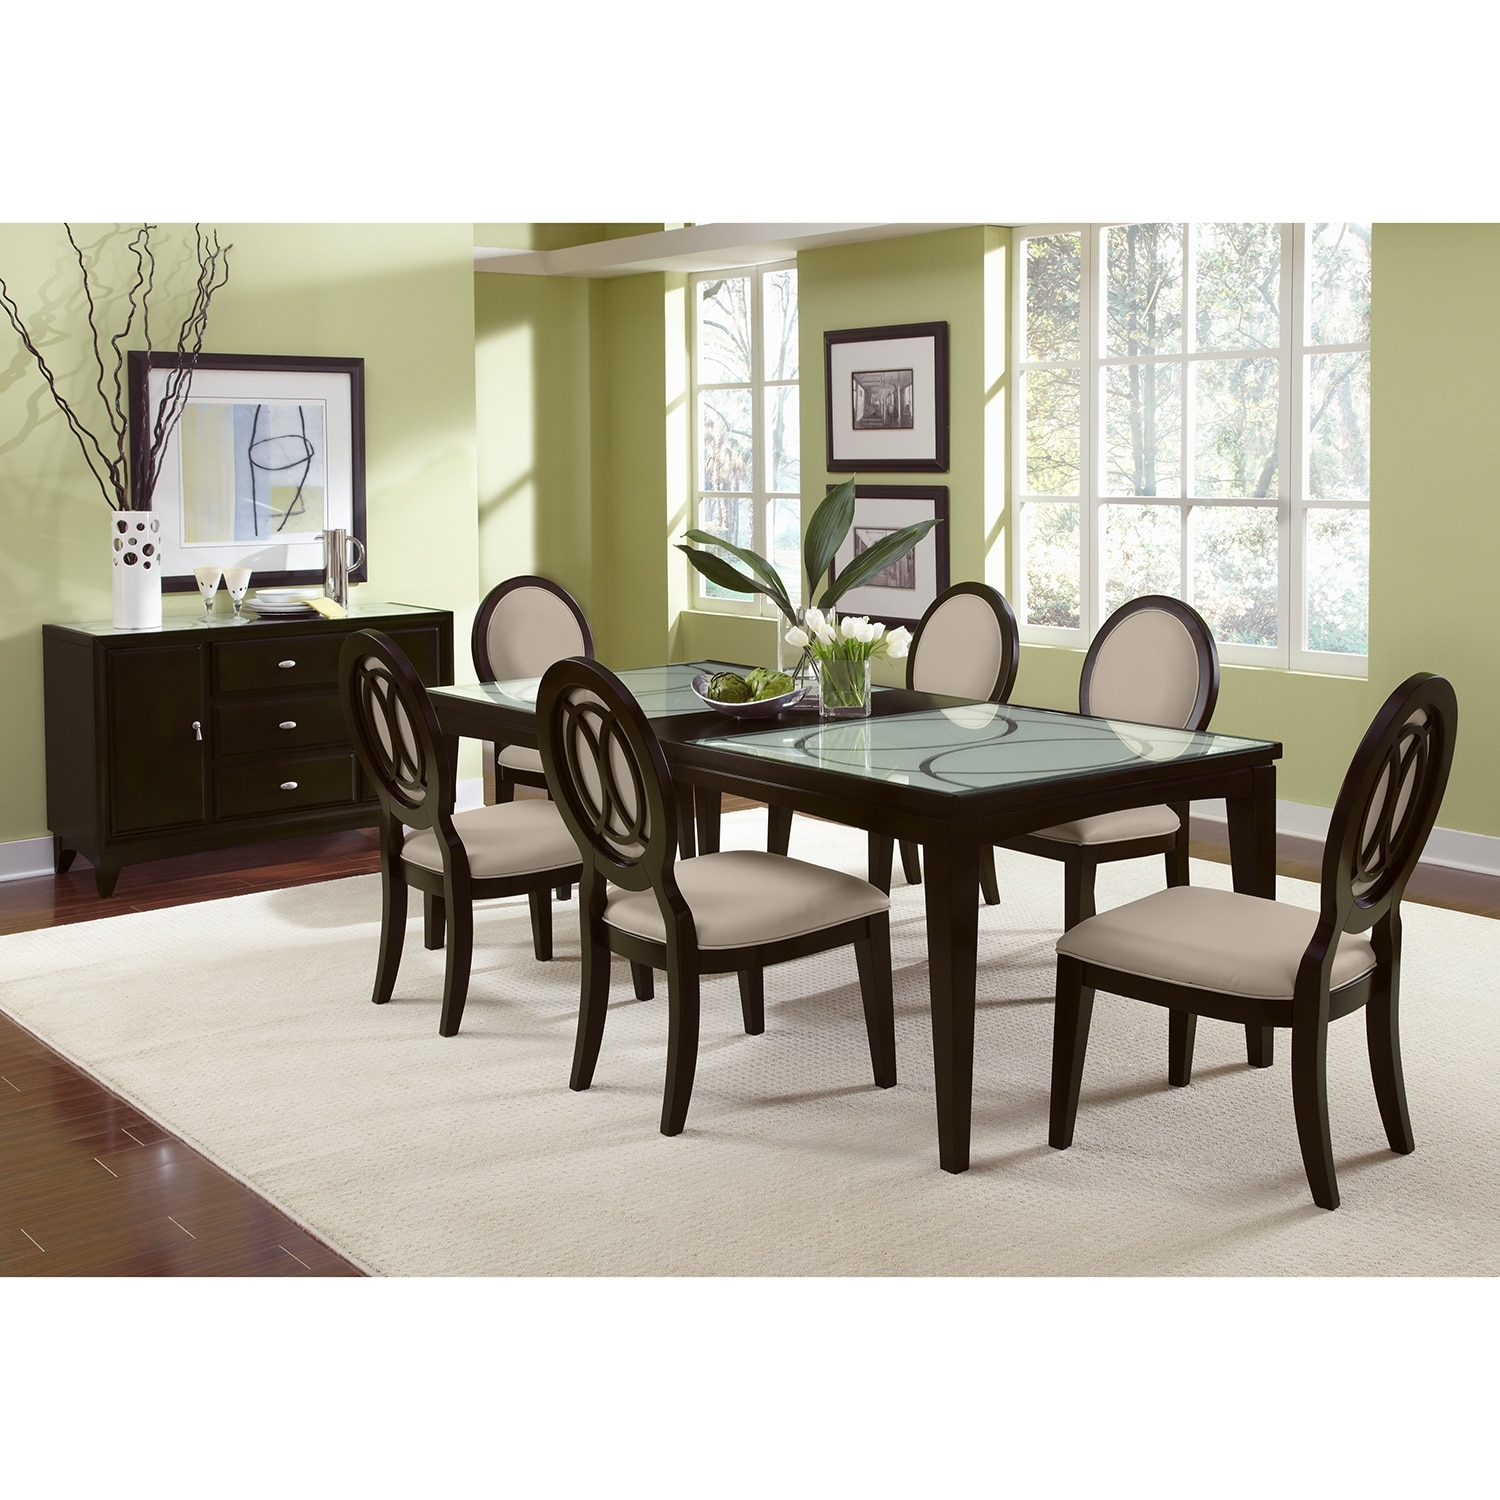 Dining Room Tables: Click To Change Image